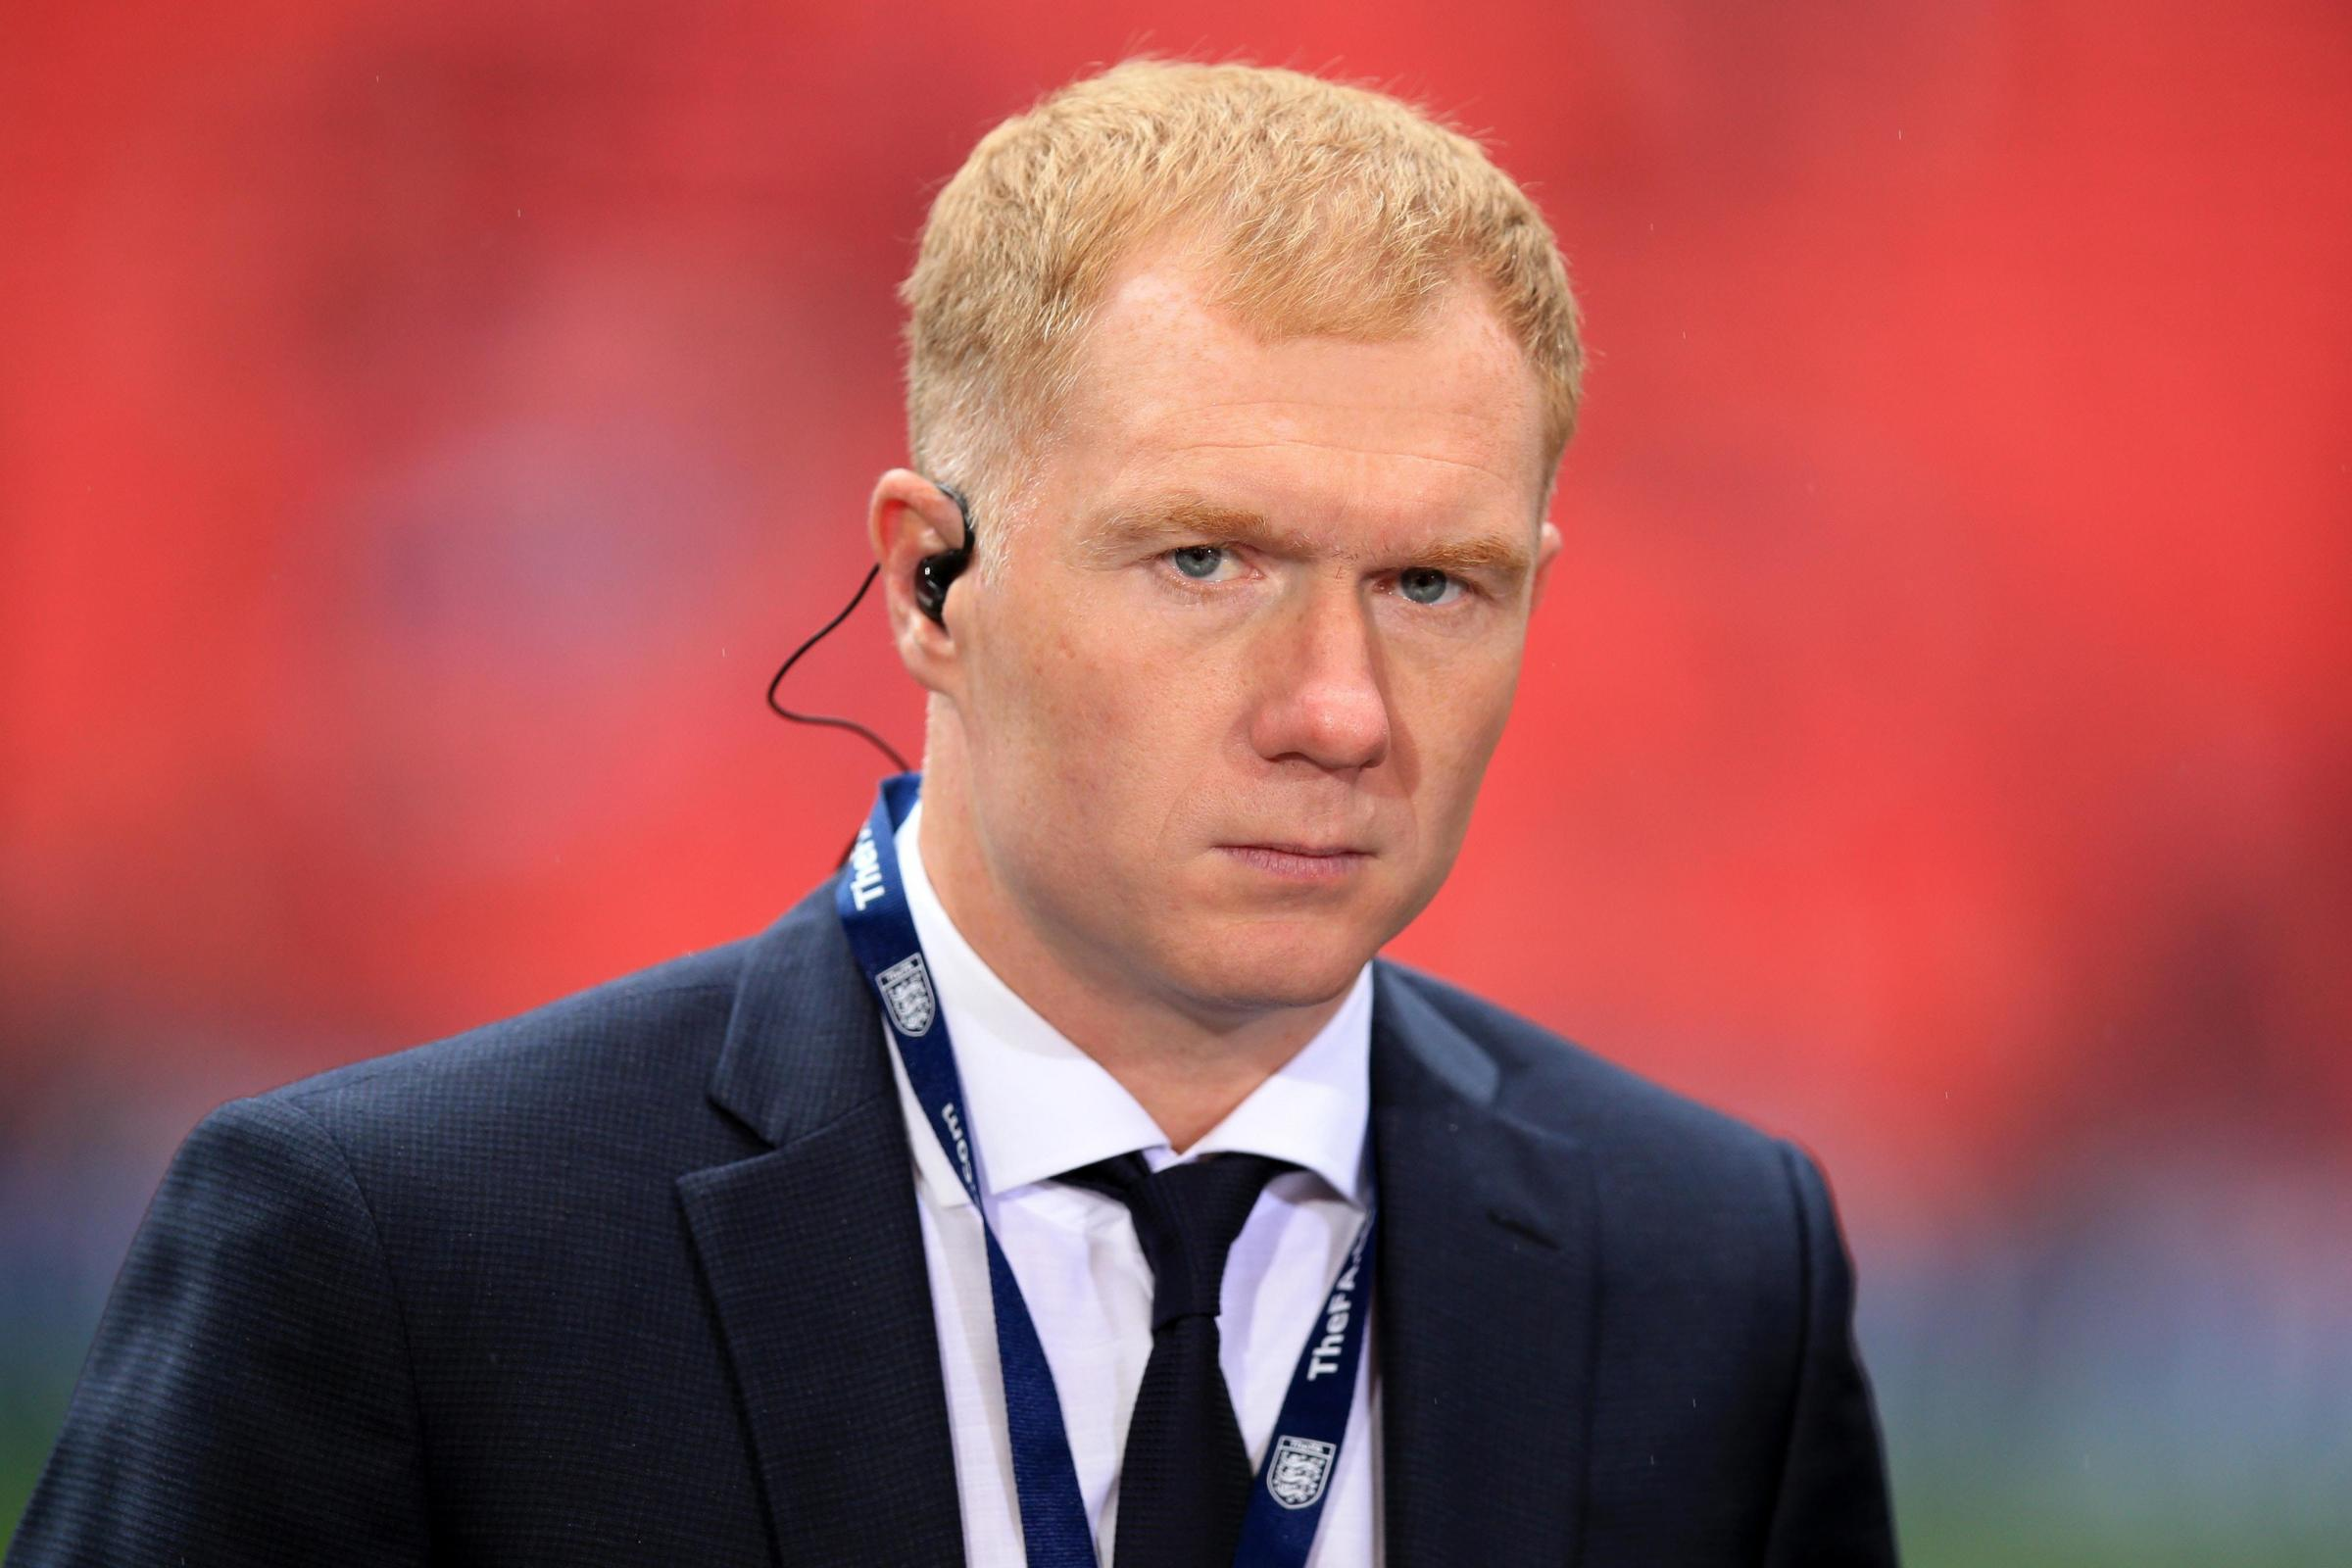 Paul Scholes is the latest former Manchester United player to move into management